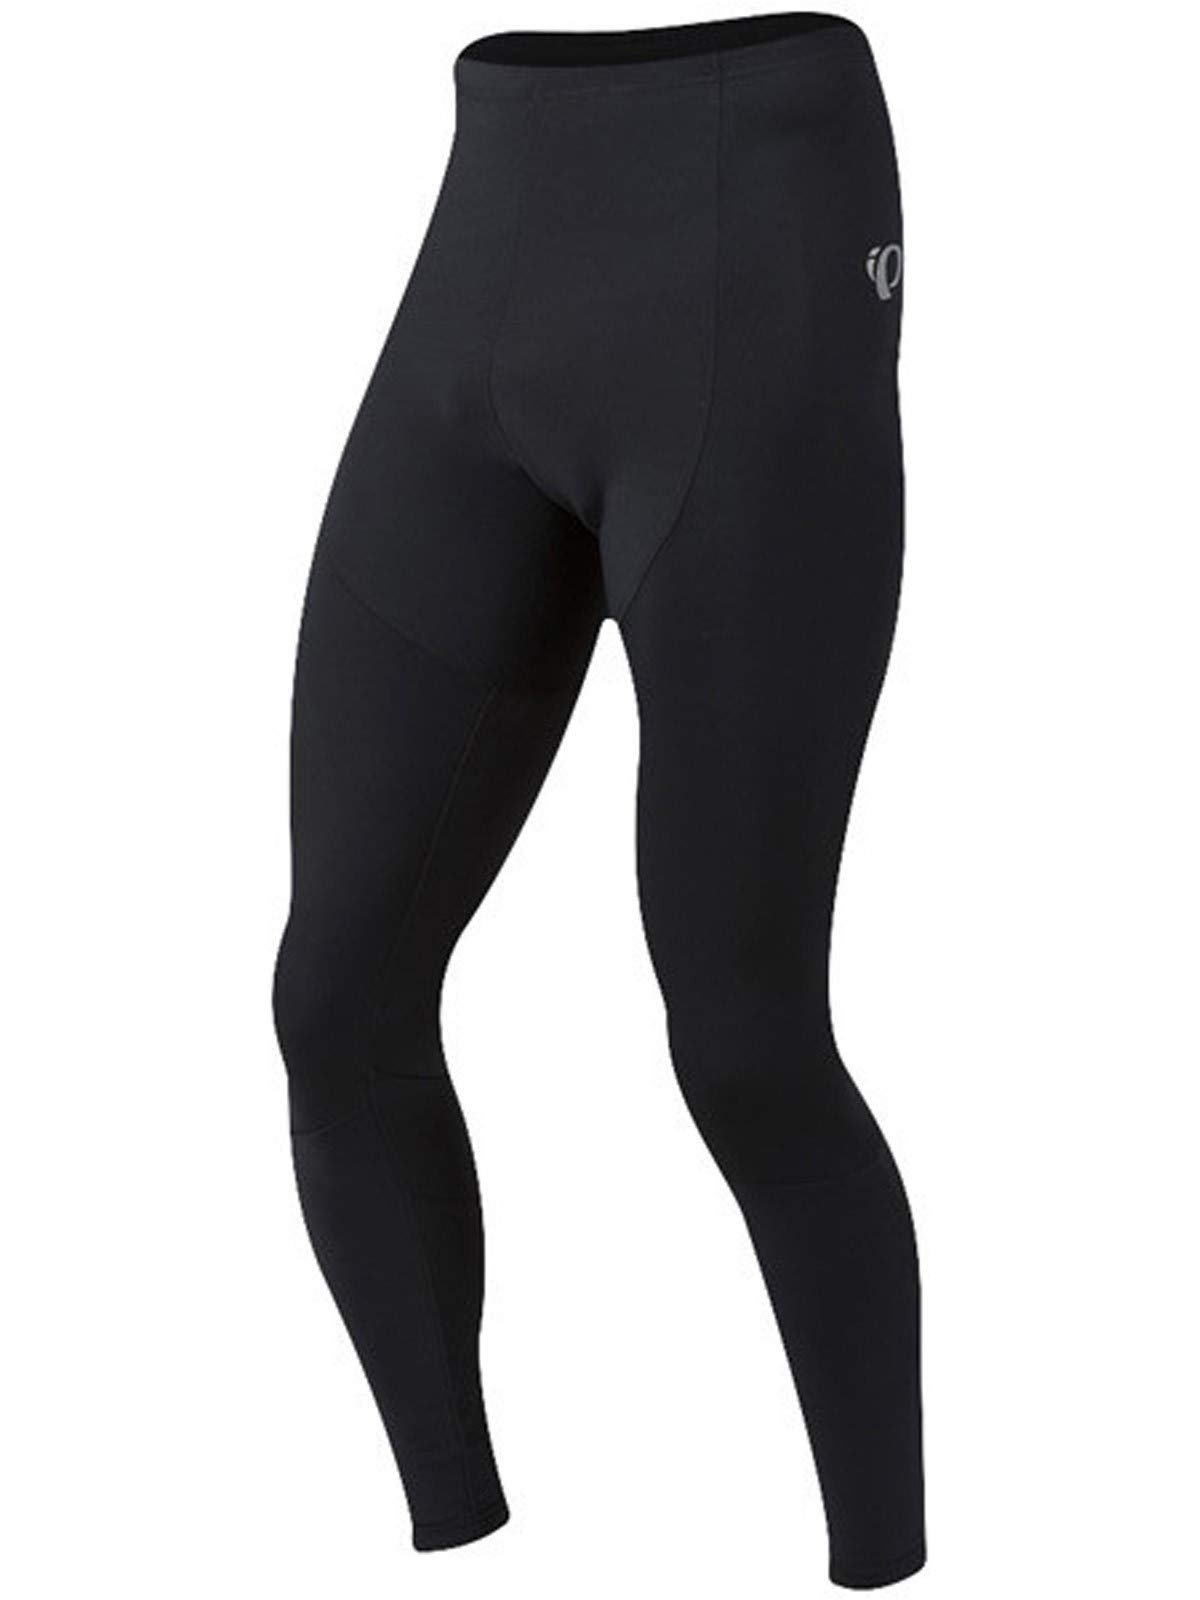 Pearl iZUMi Pursuit Thermal Tights, Black, Small